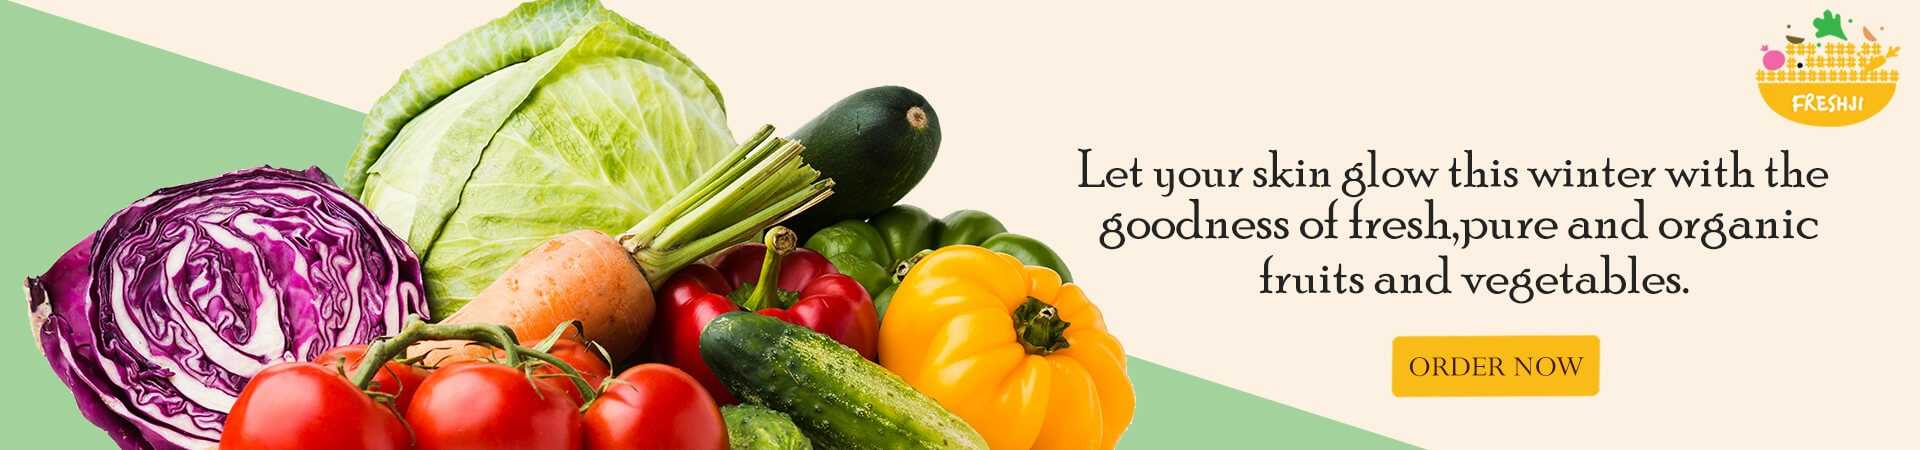 Freshji Pure and organic fruits and vegetables online